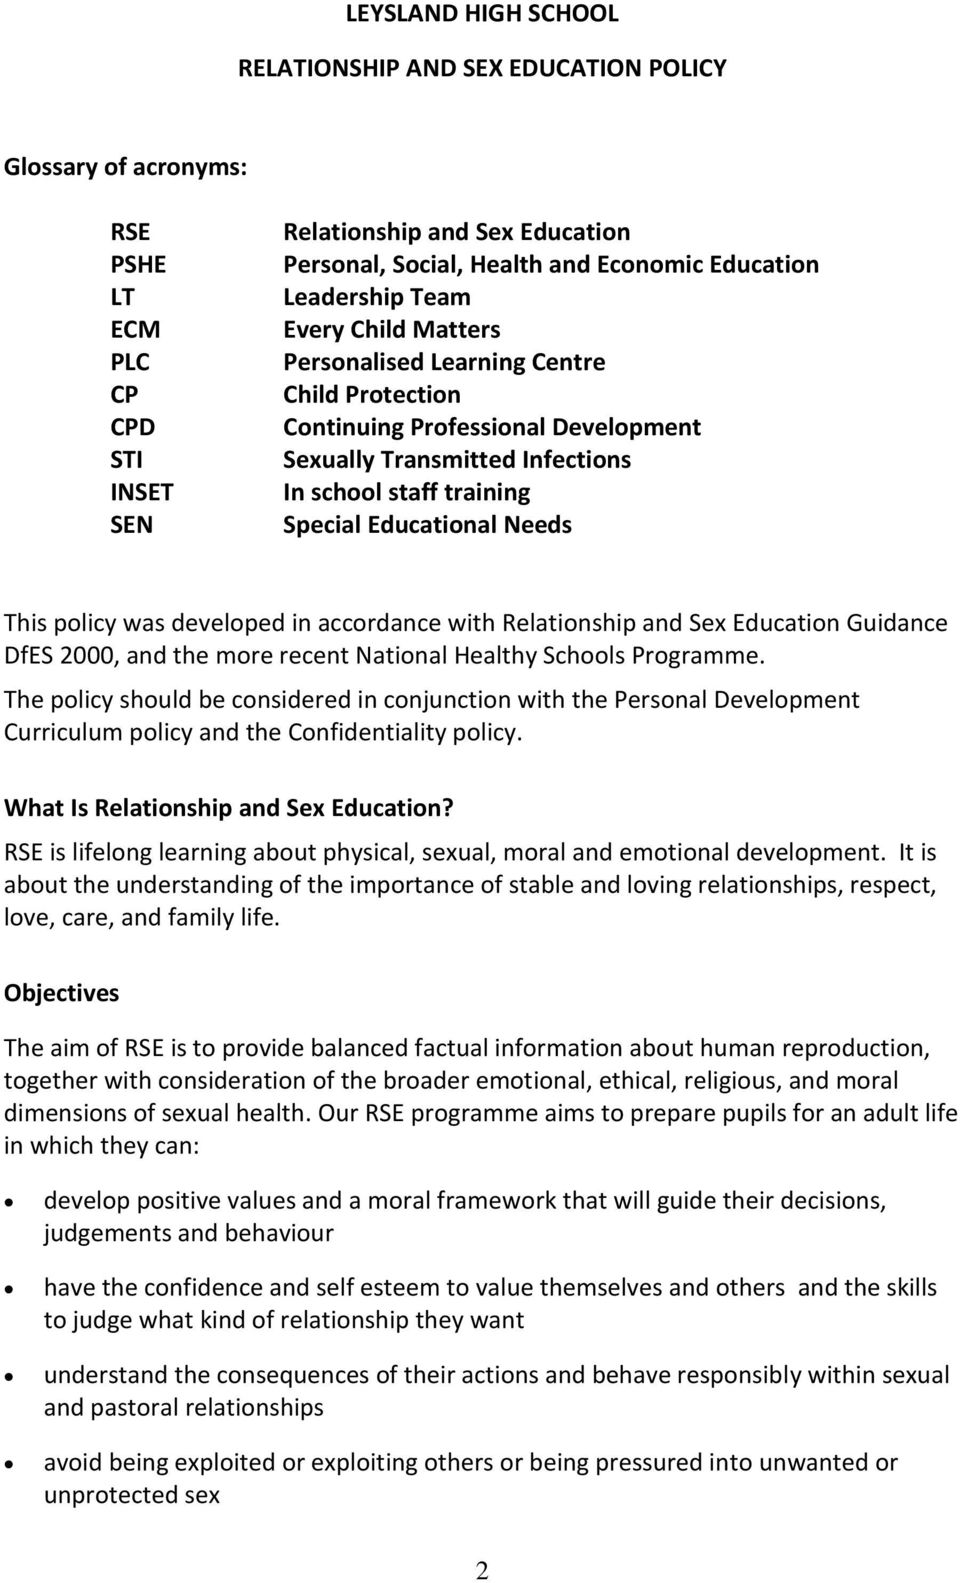 Educational Needs This policy was developed in accordance with Relationship and Sex Education Guidance DfES 2000, and the more recent National Healthy Schools Programme.